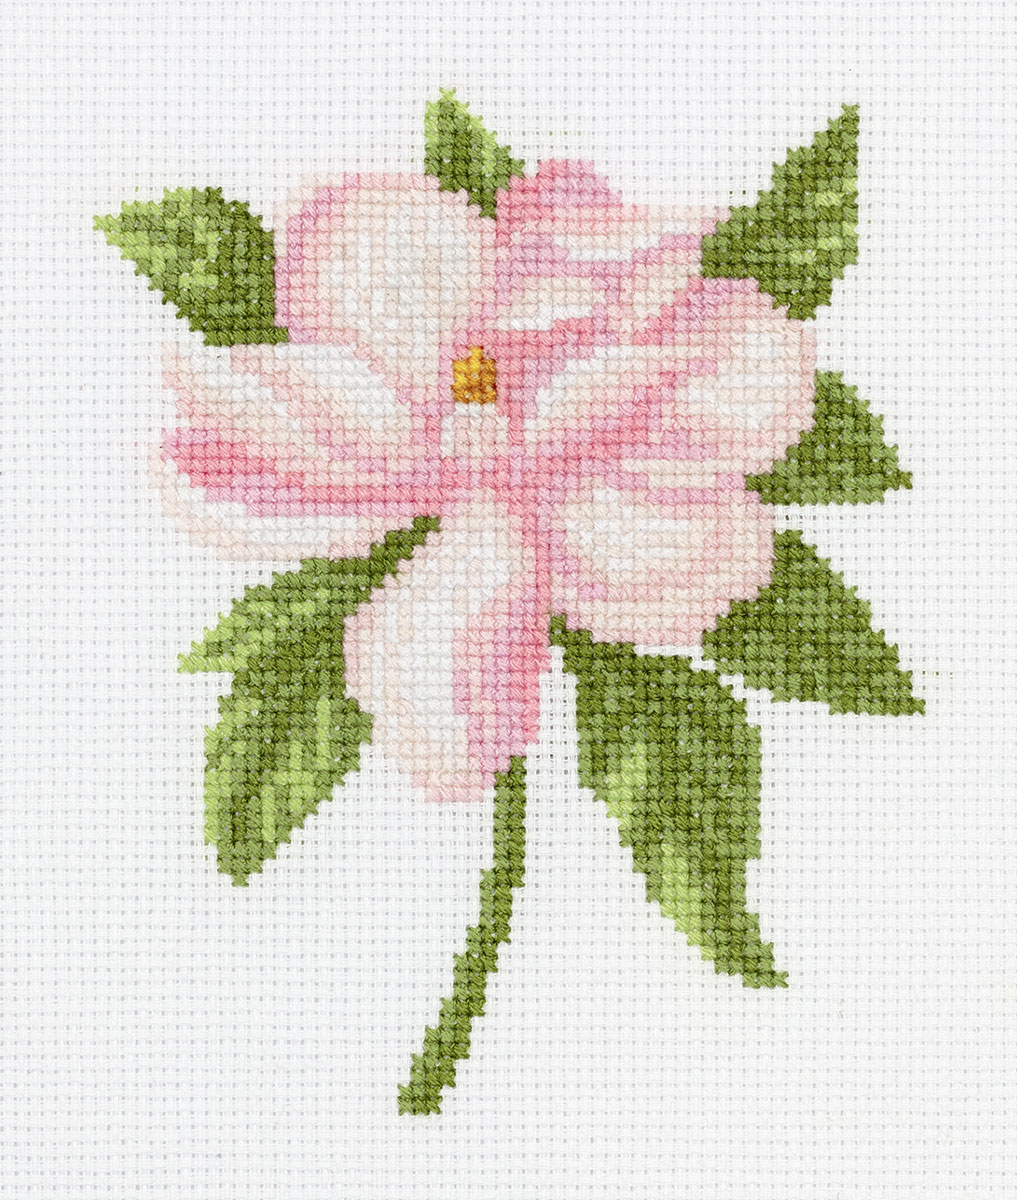 Embroidery kits PANNA 8-317 Pink Flower